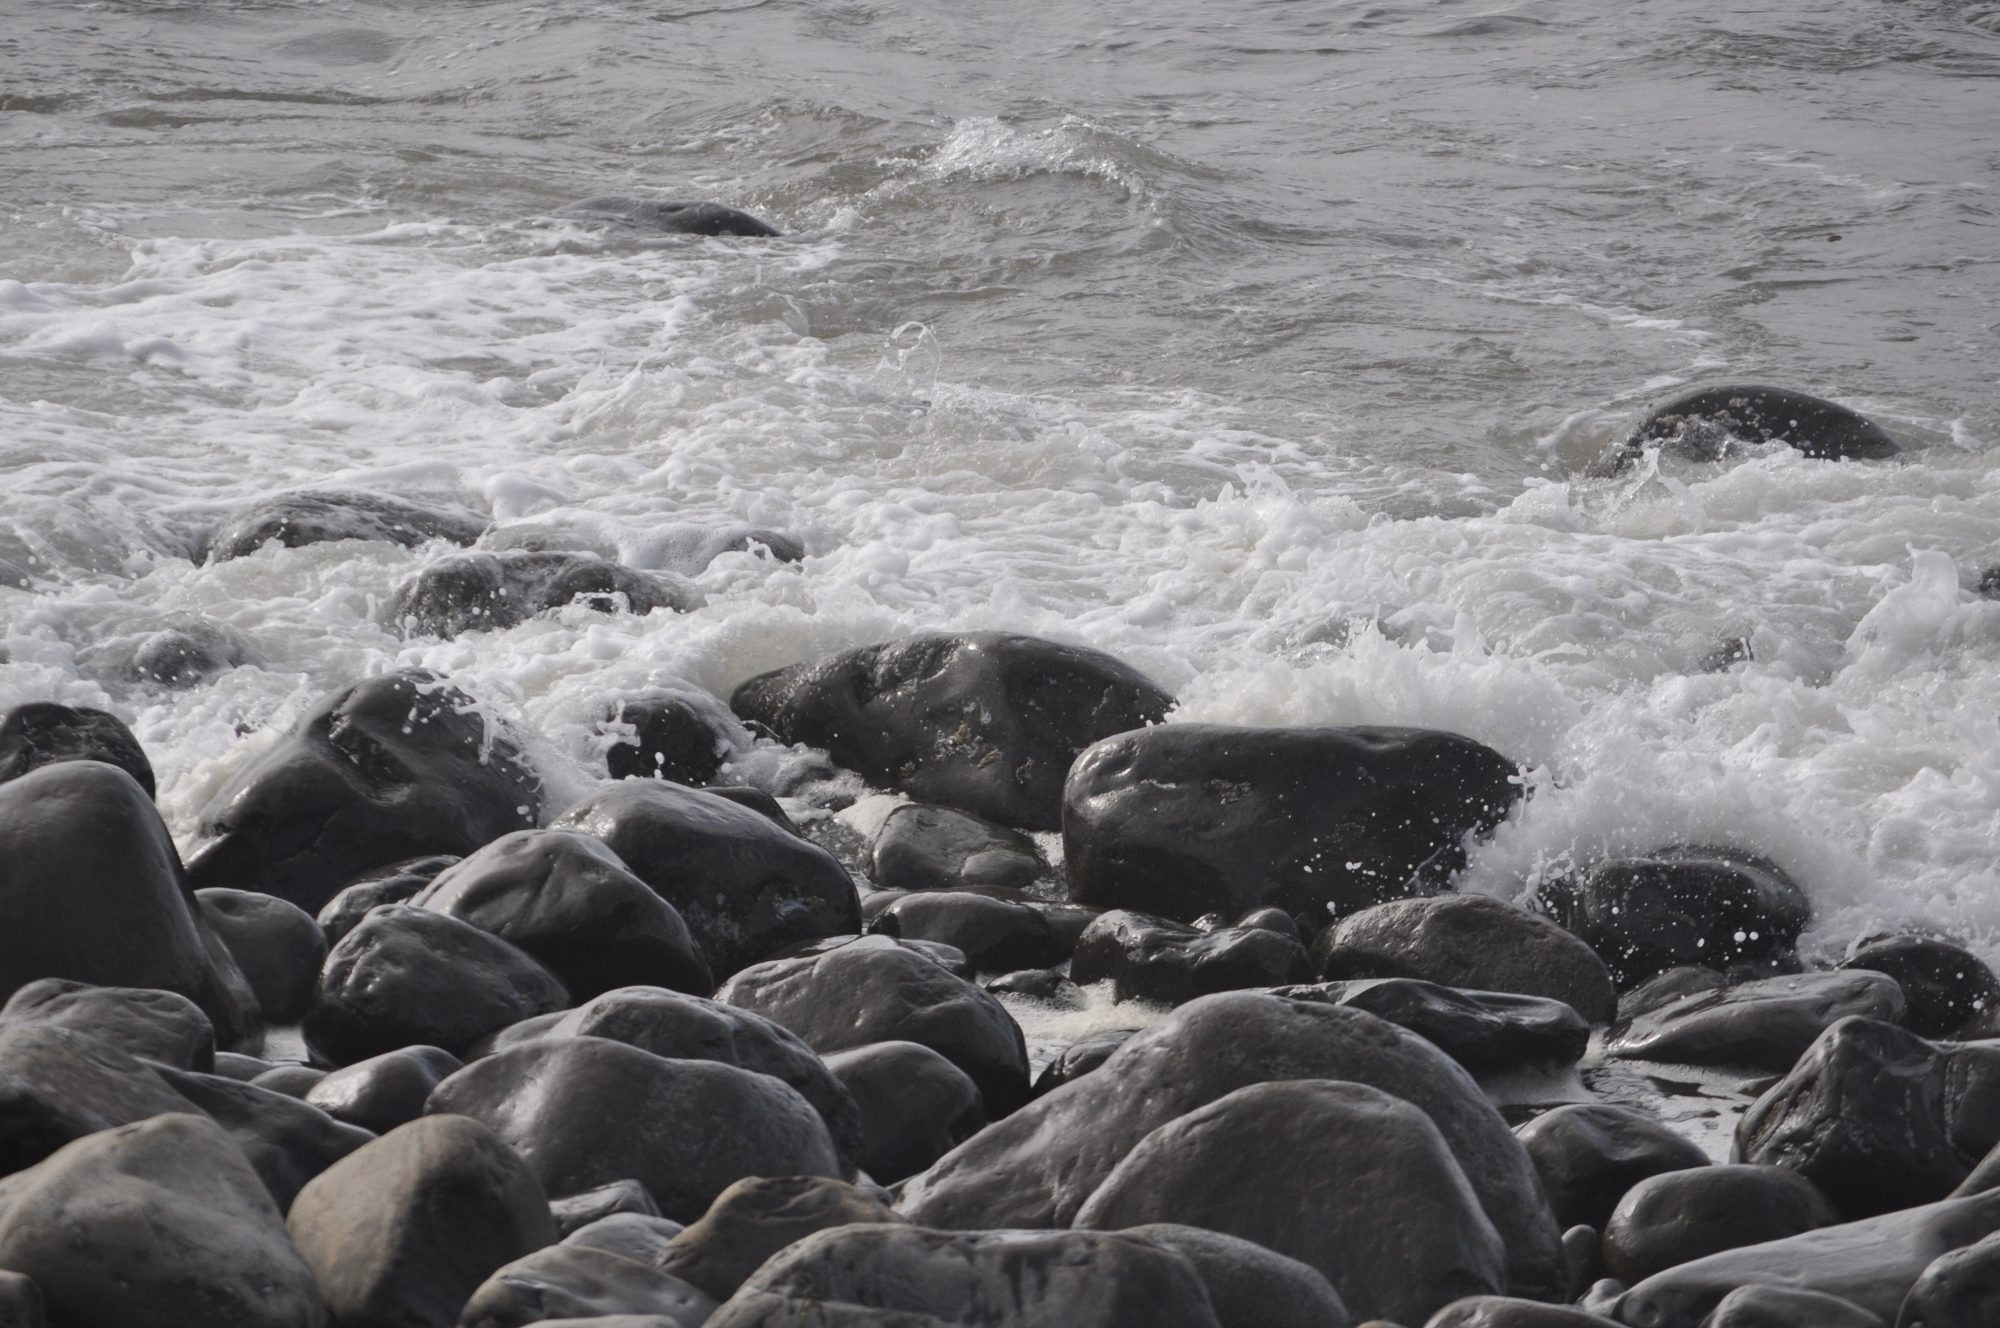 A bed of rocks along the shore of